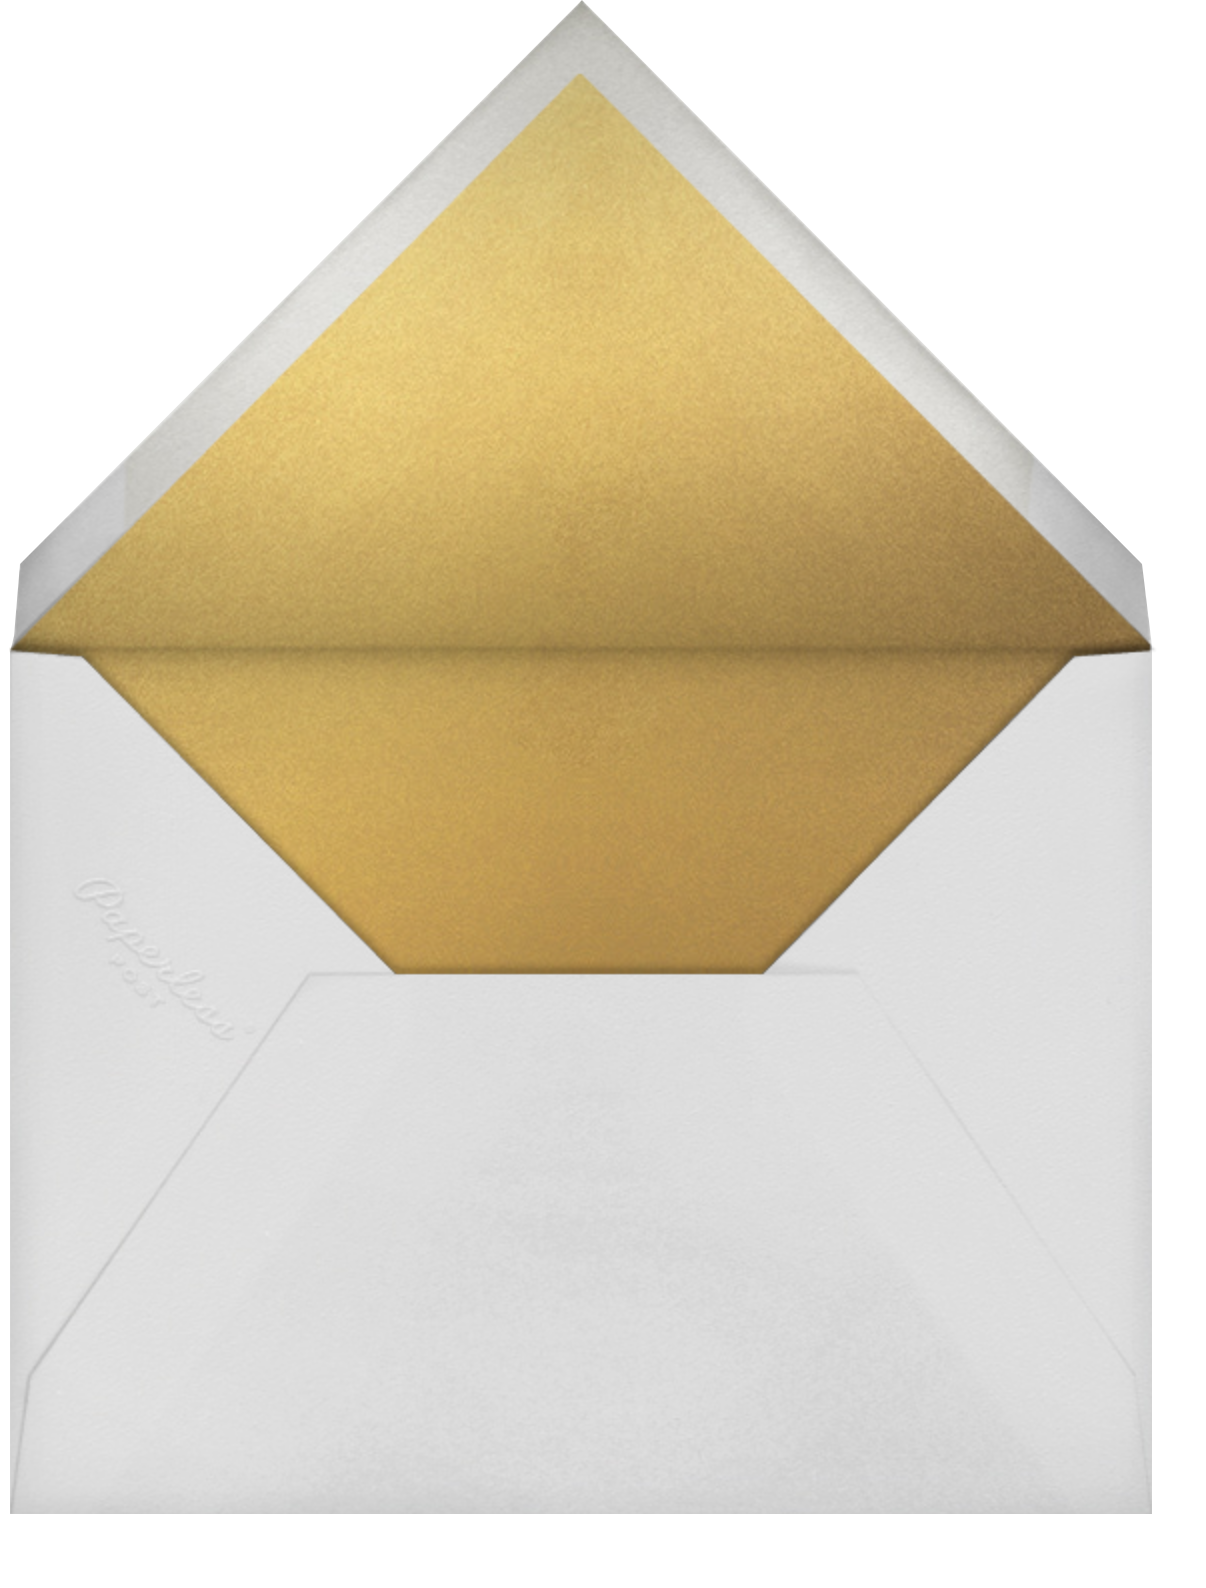 Wreath of Stars - Caviar - Paperless Post - New Year - envelope back